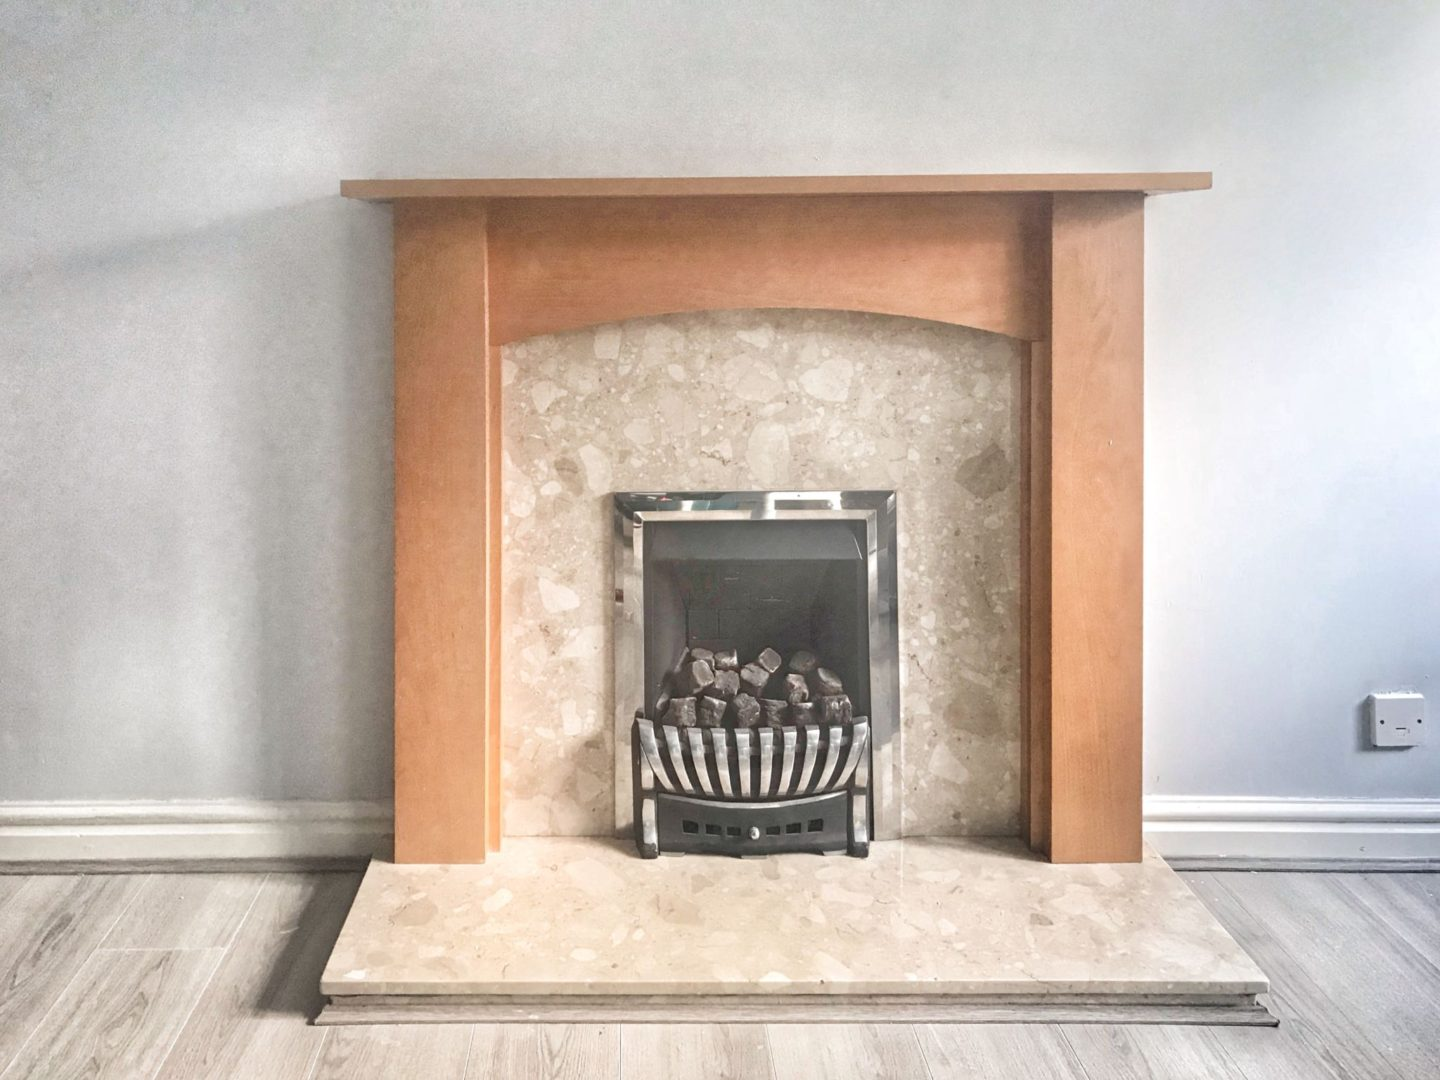 the fireplace before we painted it, brown wooden surround